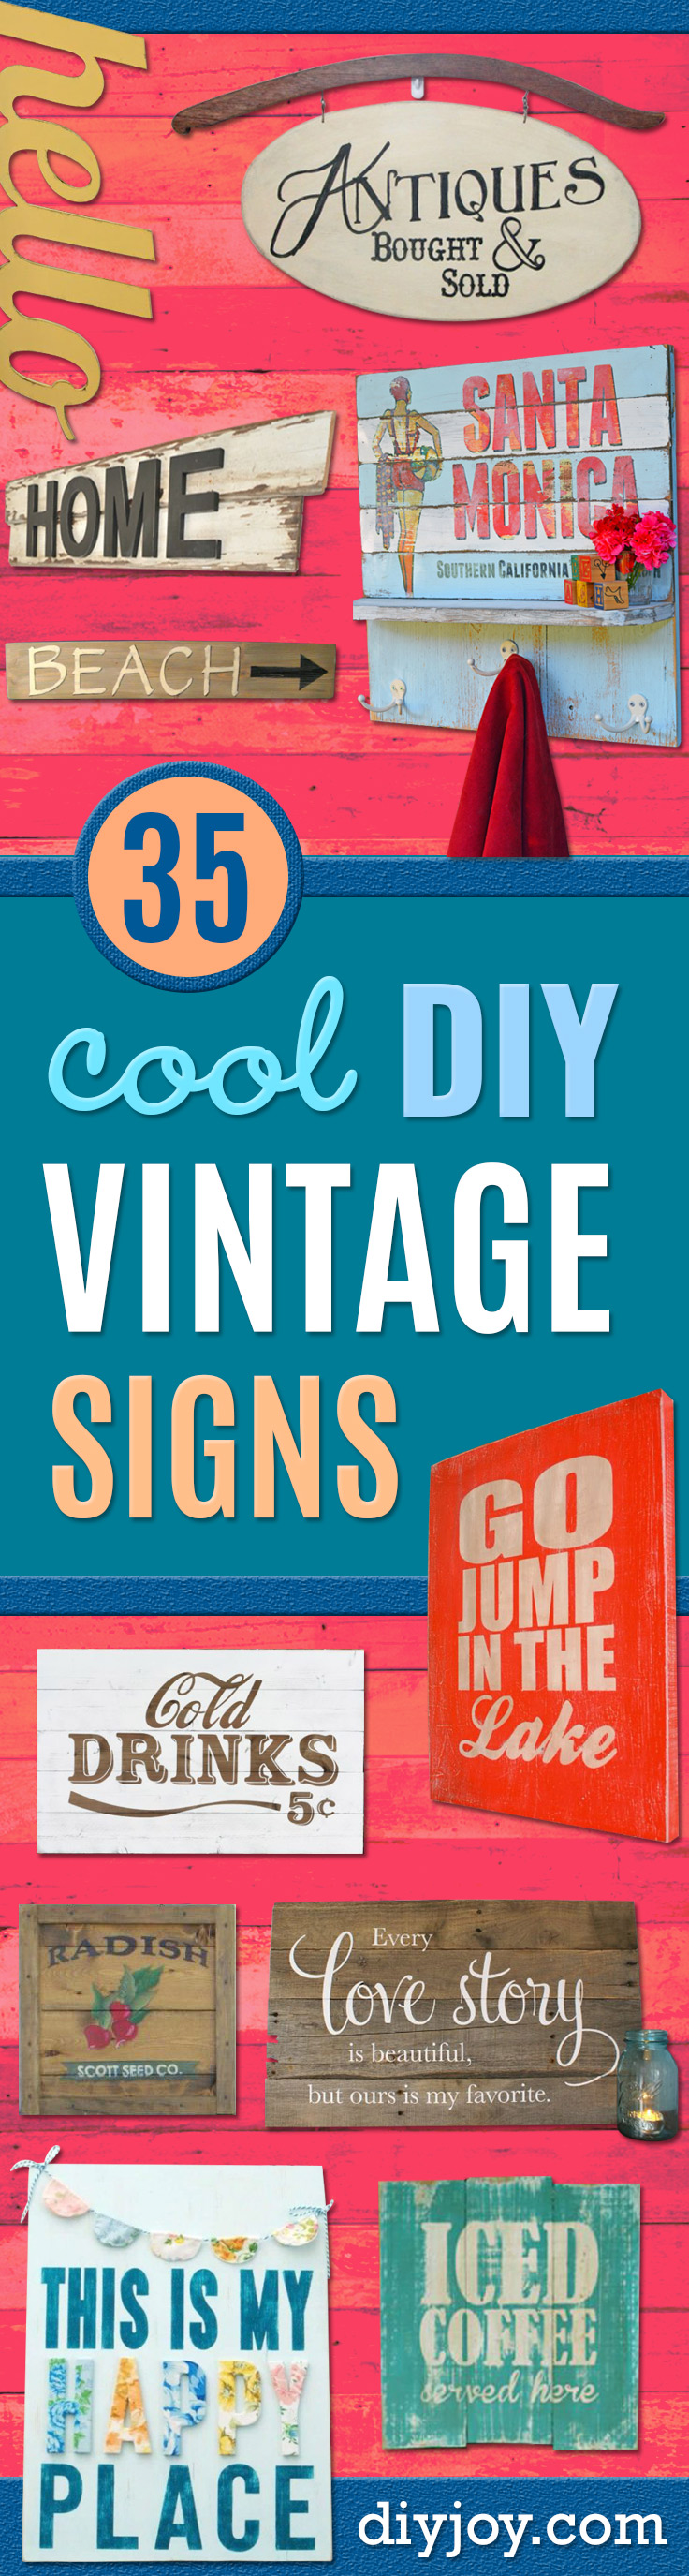 DIY Vintage Signs - Rustic, Vintage Sign Projects to Make At Home - Creative Home Decor on a Budget and Cheap Crafts for Living Room, Bedroom and Kitchen - Paint Letters, Transfer to Wood, Aged Finishes and Fun Word Stencils and Easy Ideas for Farmhouse Wall Art http://diyjoy.com/diy-vintage-signs